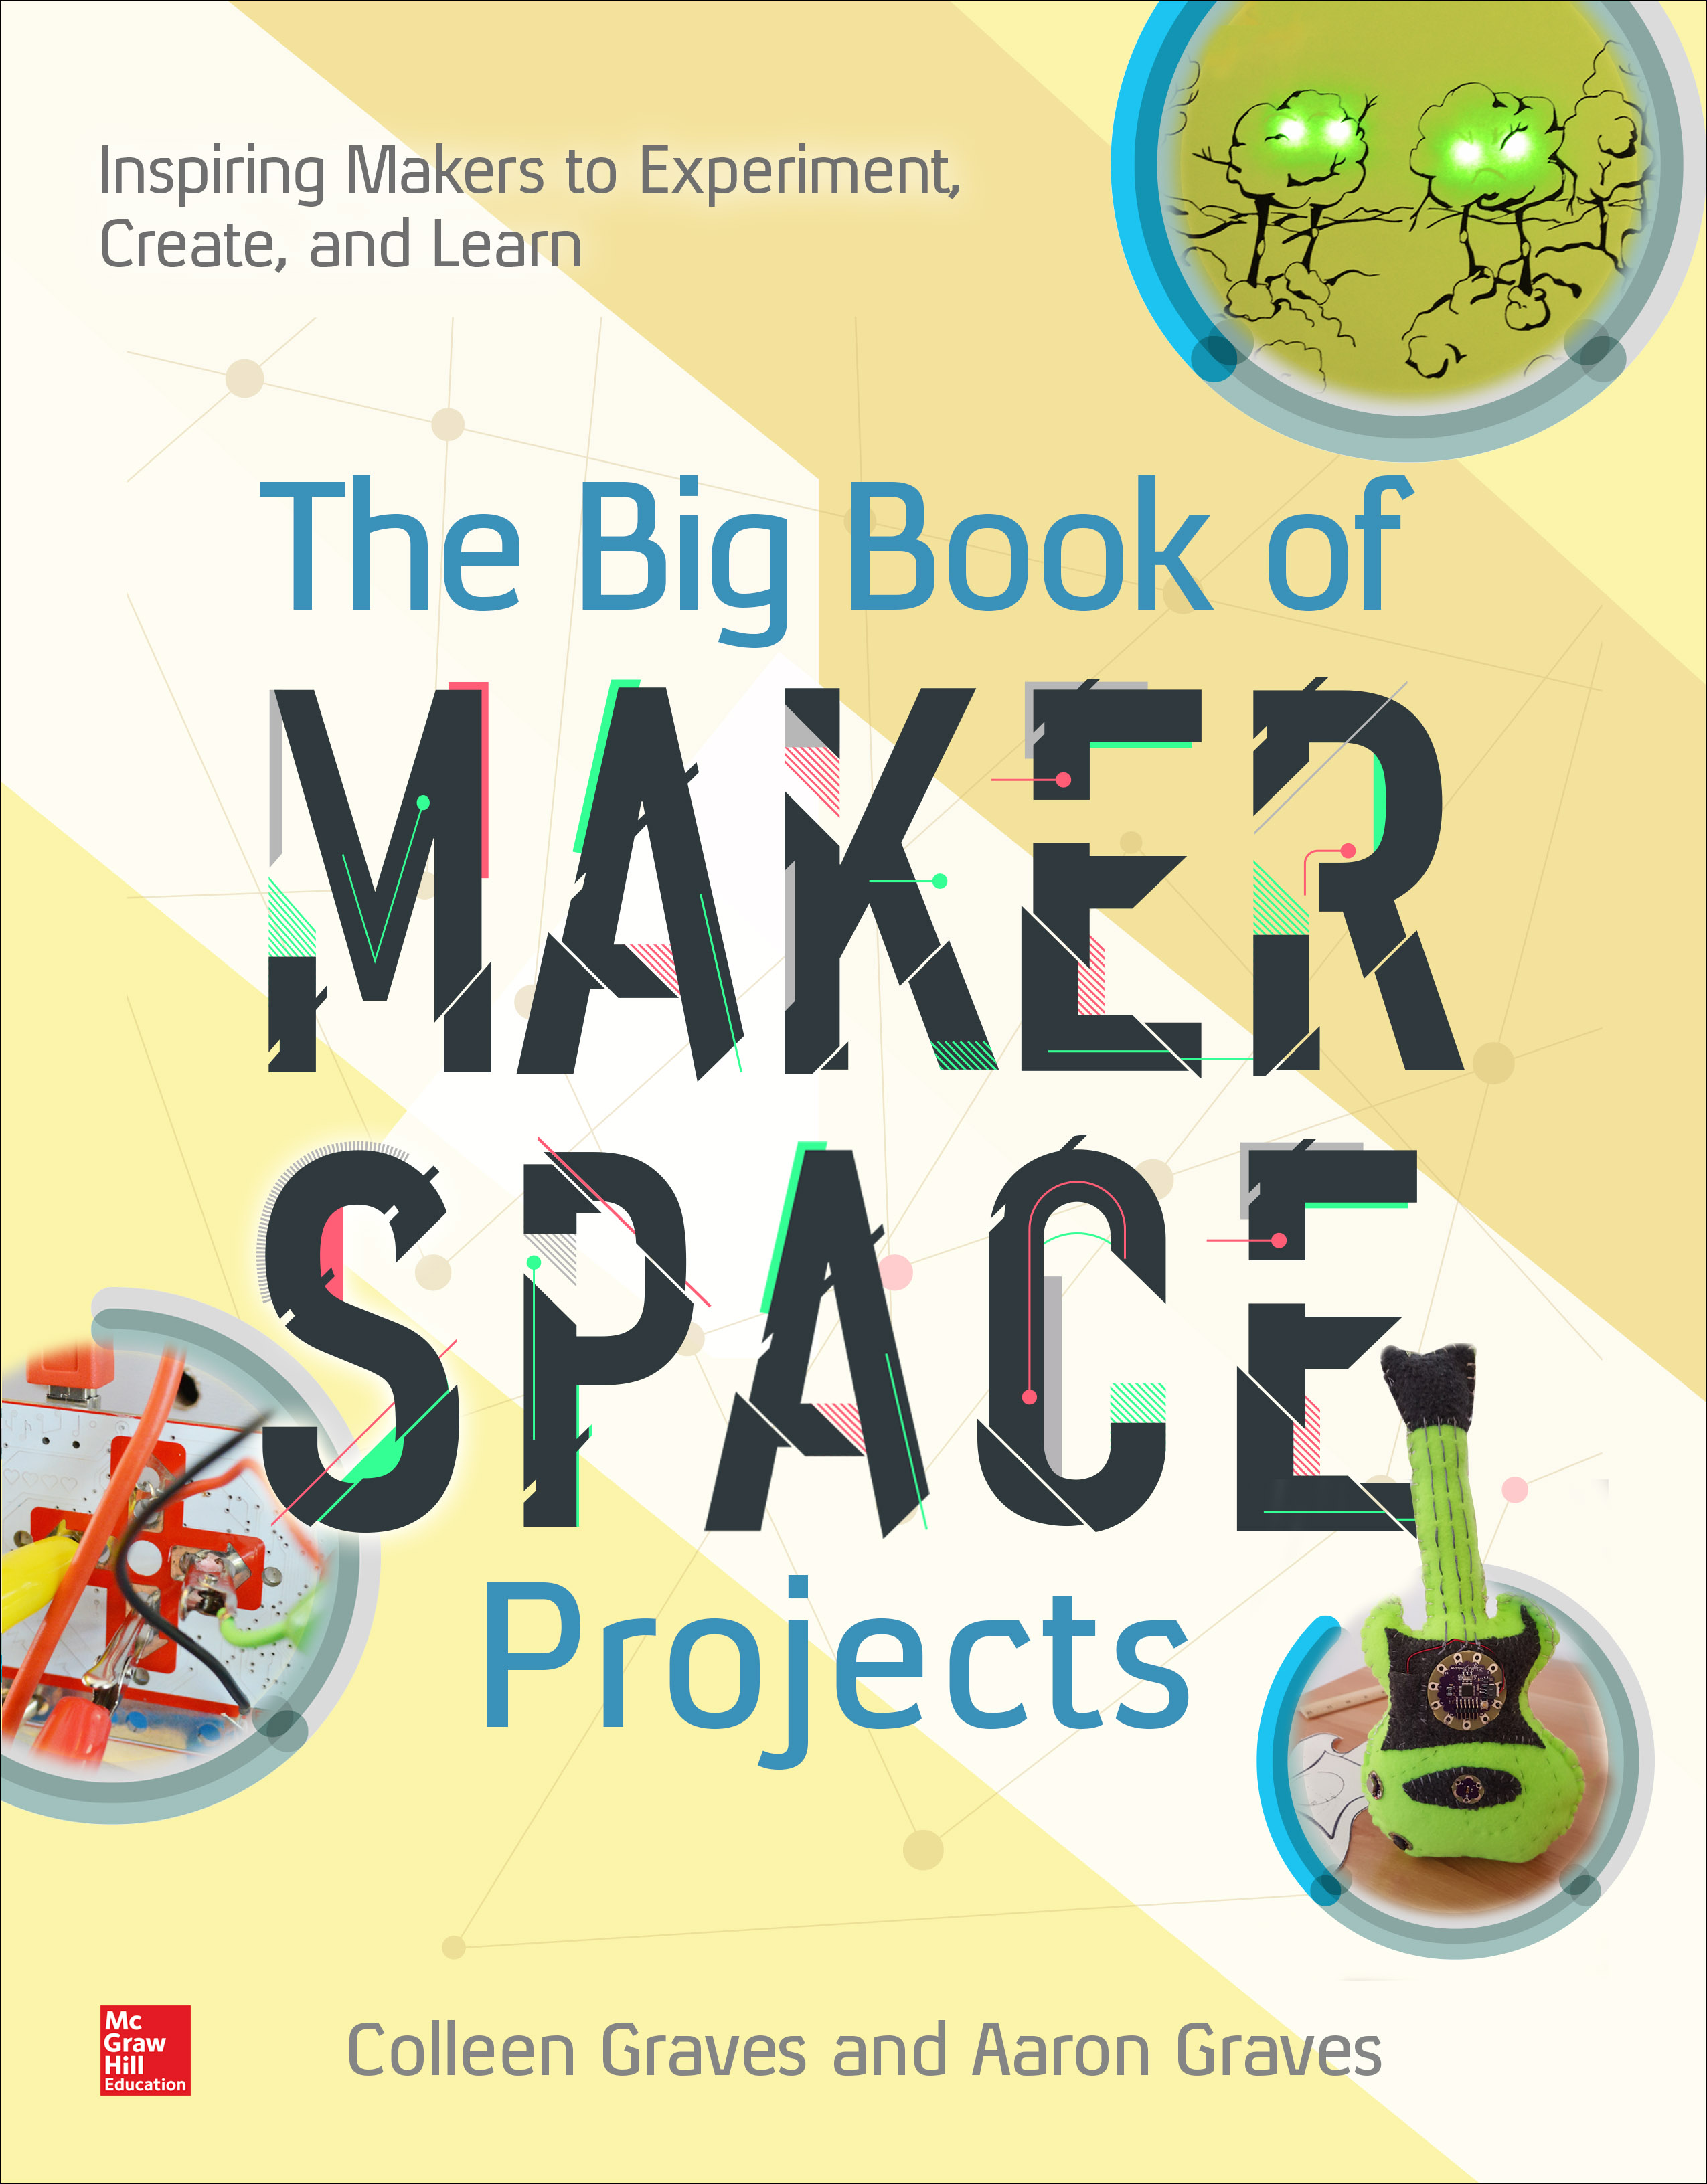 Paper Circuits And The Big Book Of Makerspace Projects